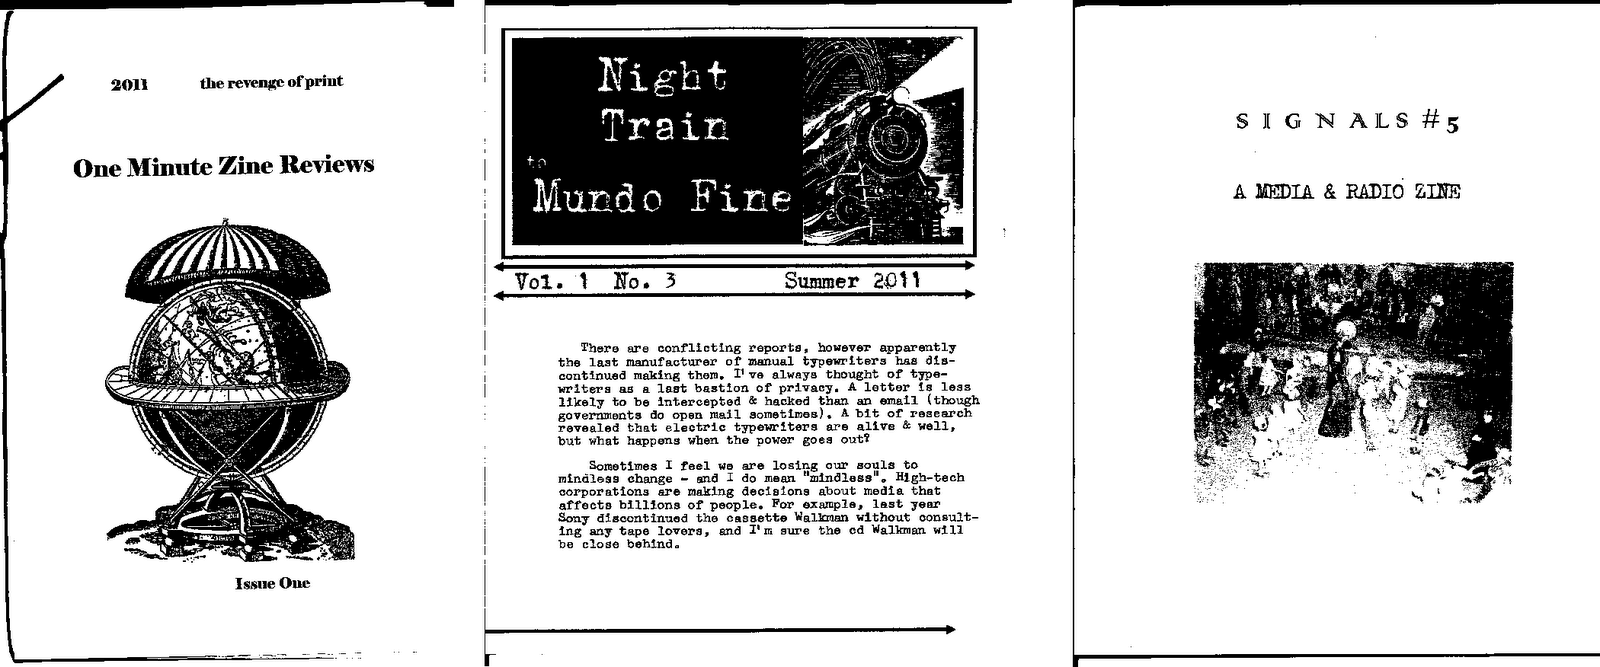 One minute Zine Reviews #1, Night Train to Mundo Fine #3 and Signals #5. Syndicated Zine Reviews: 9/1/11 - 10/1/11